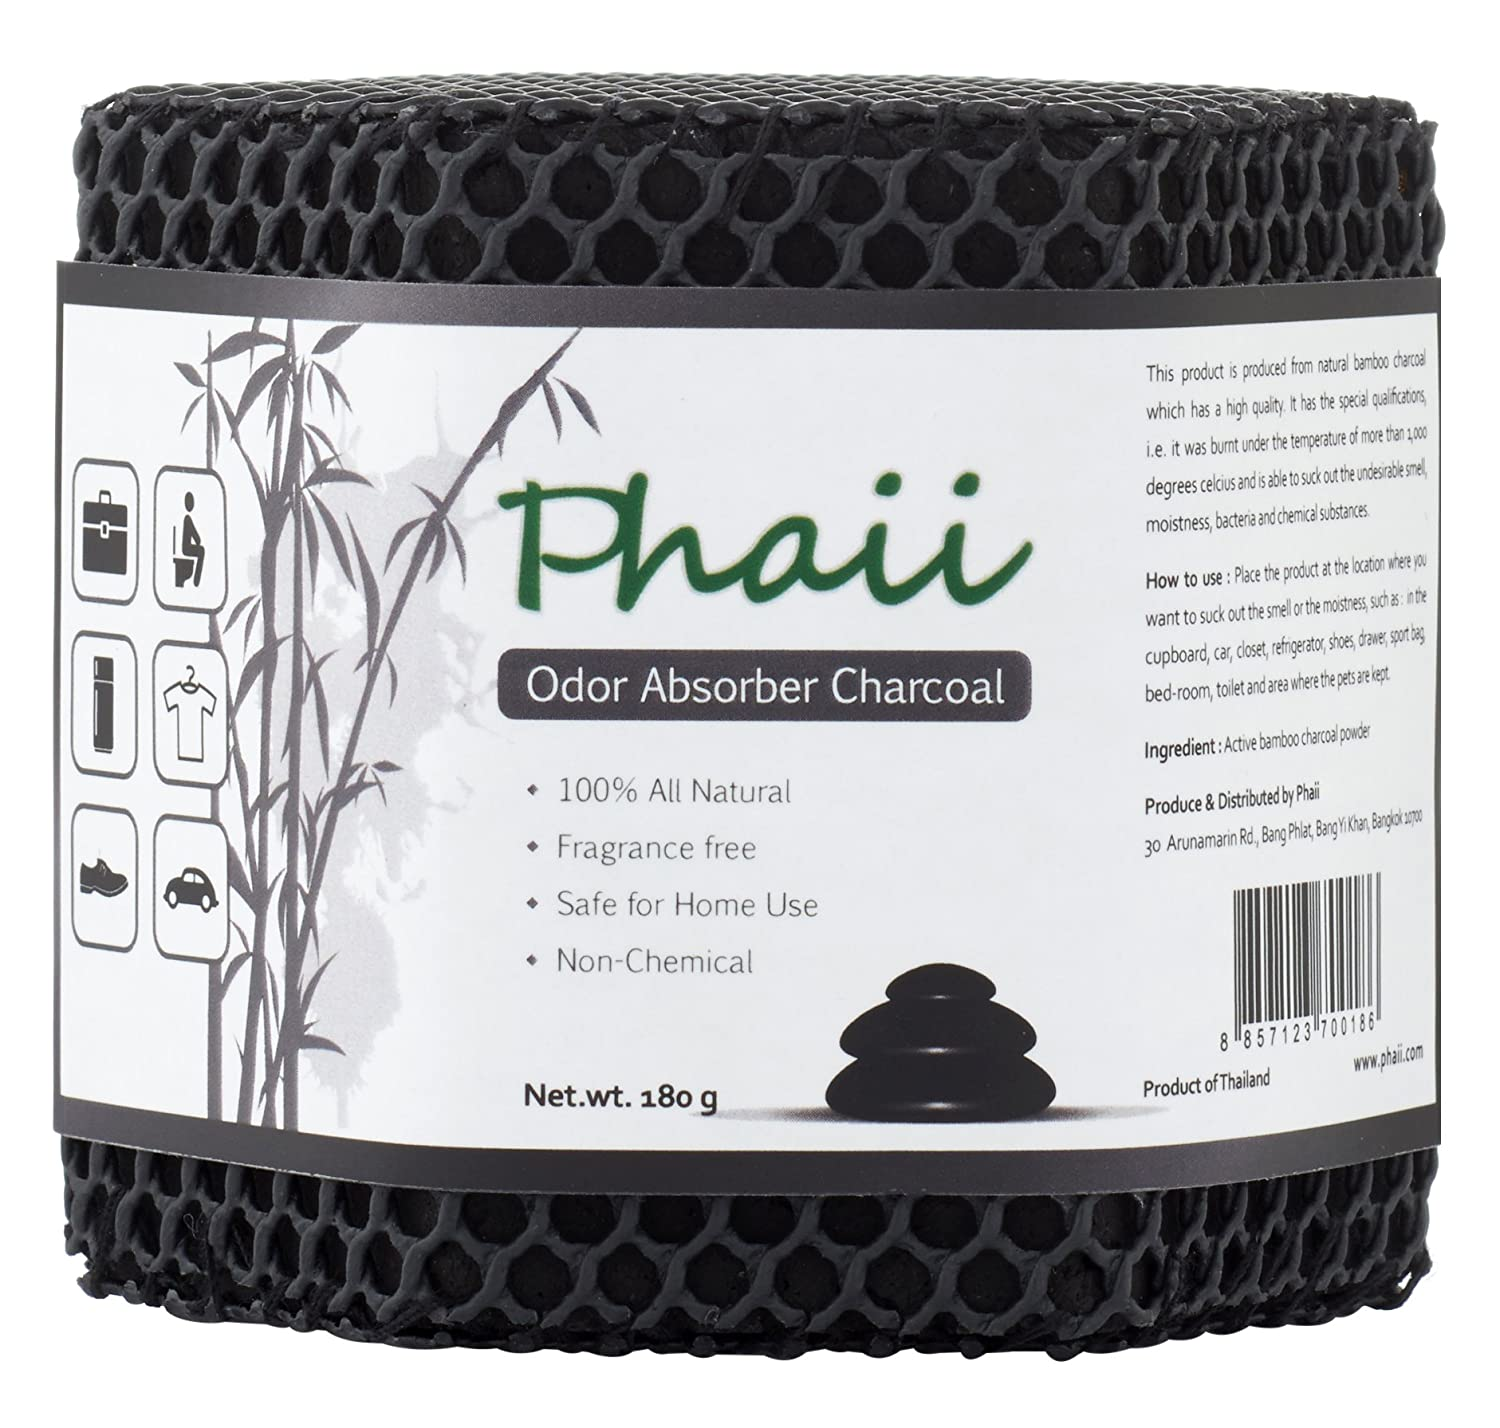 Bamboo Activated Charcoal Odor Absorber | Best Air Purifier | Natural Odor Eliminator & Control Moisture in Refrigerator, Closet, Car, Bag, Room - Shoe Deodorizer | 100% Chemical Free -Lasts up 2 Year